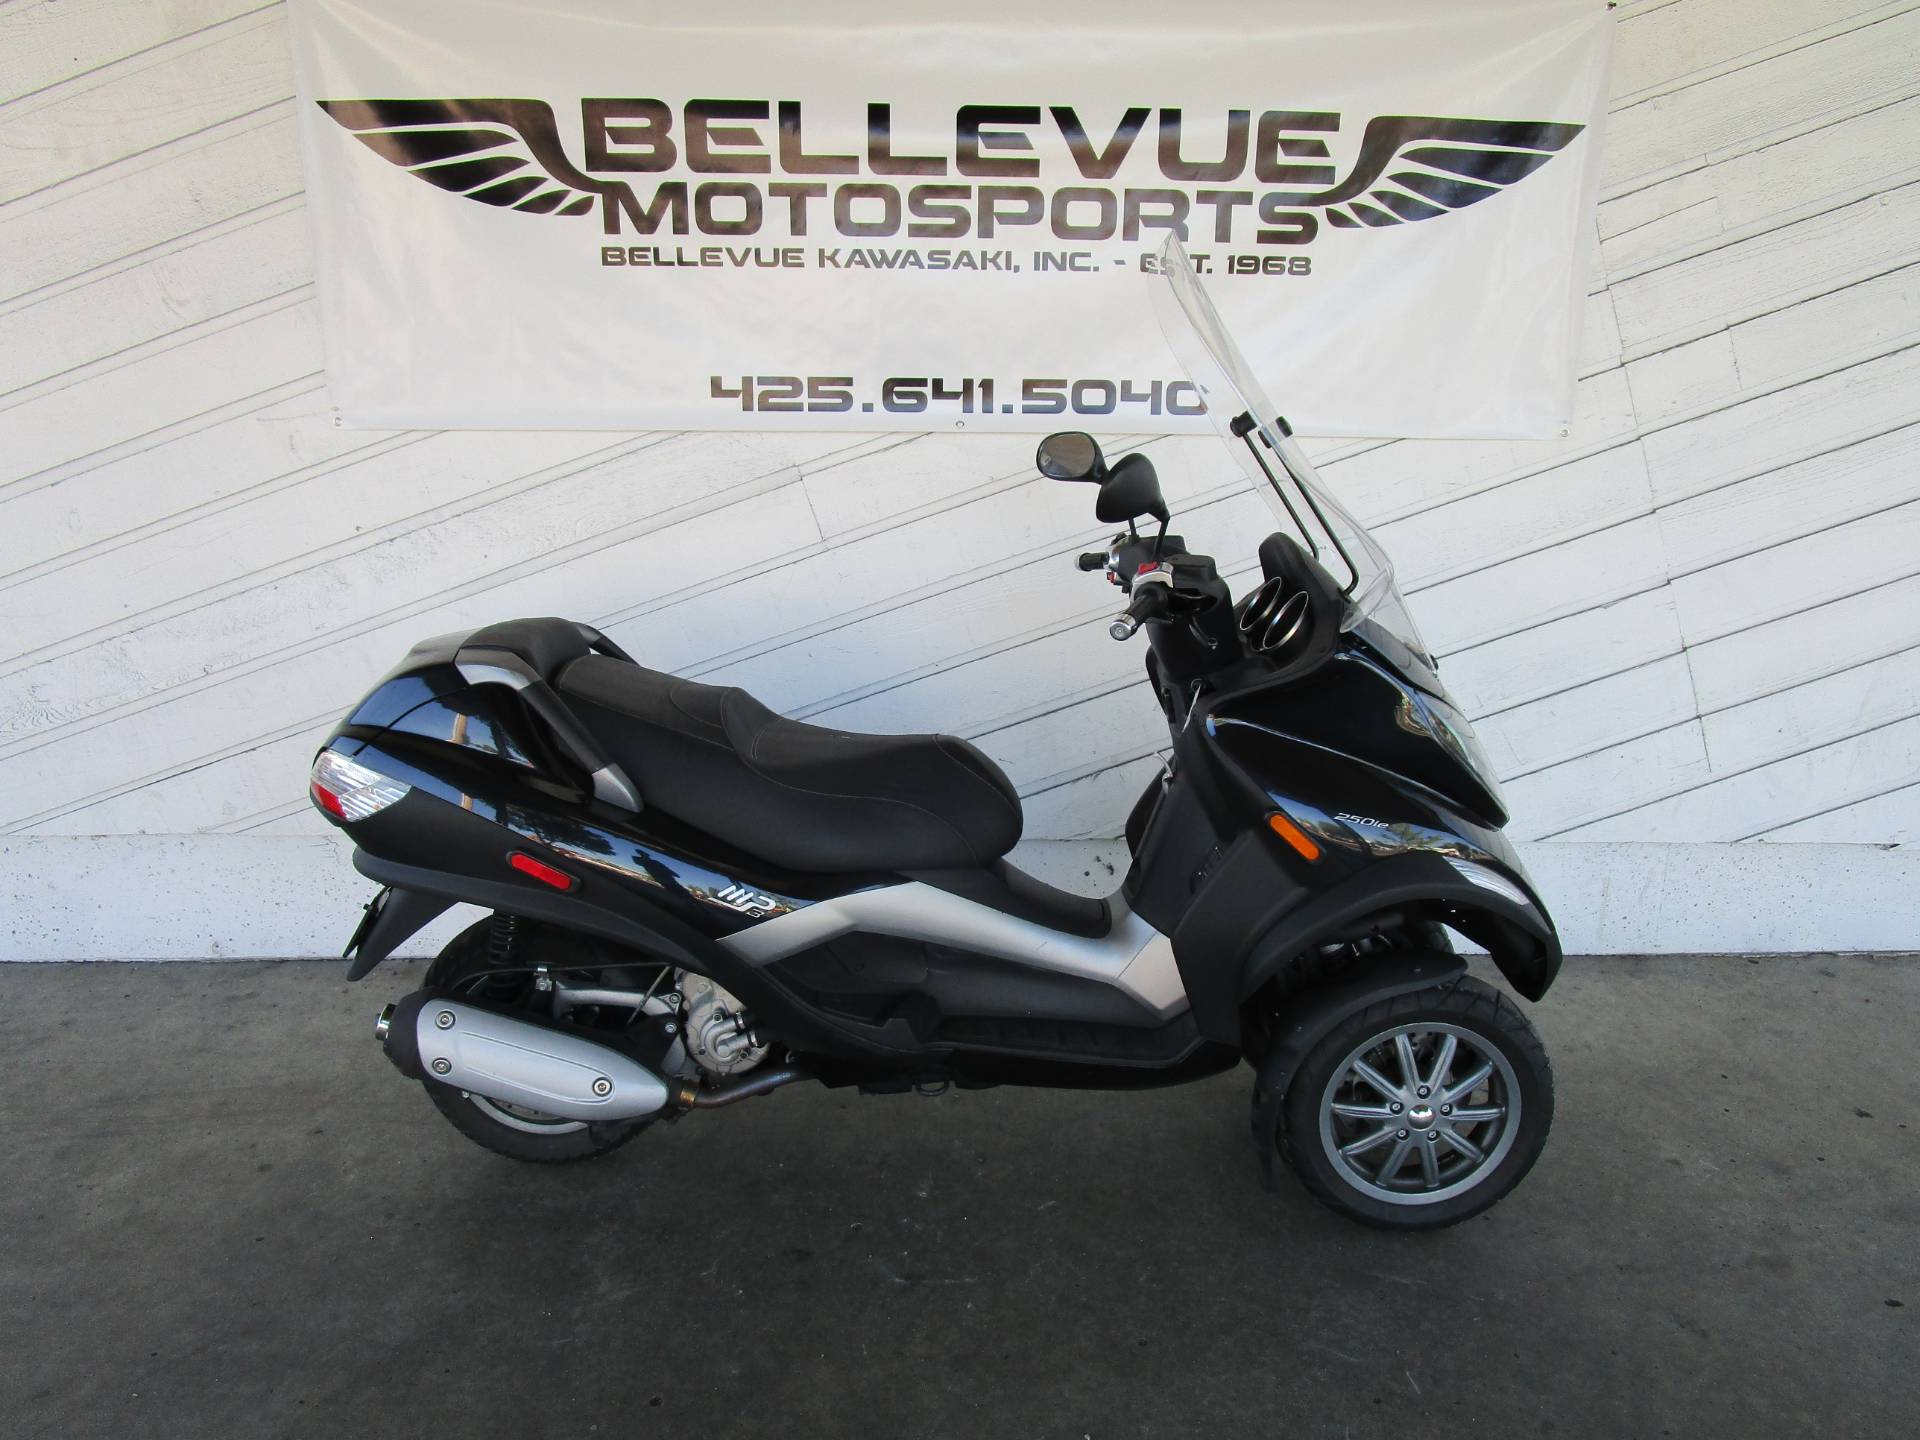 Used 2009 Piaggio MP3 250 Scooters in Bellevue, WA | Stock Number: N/A